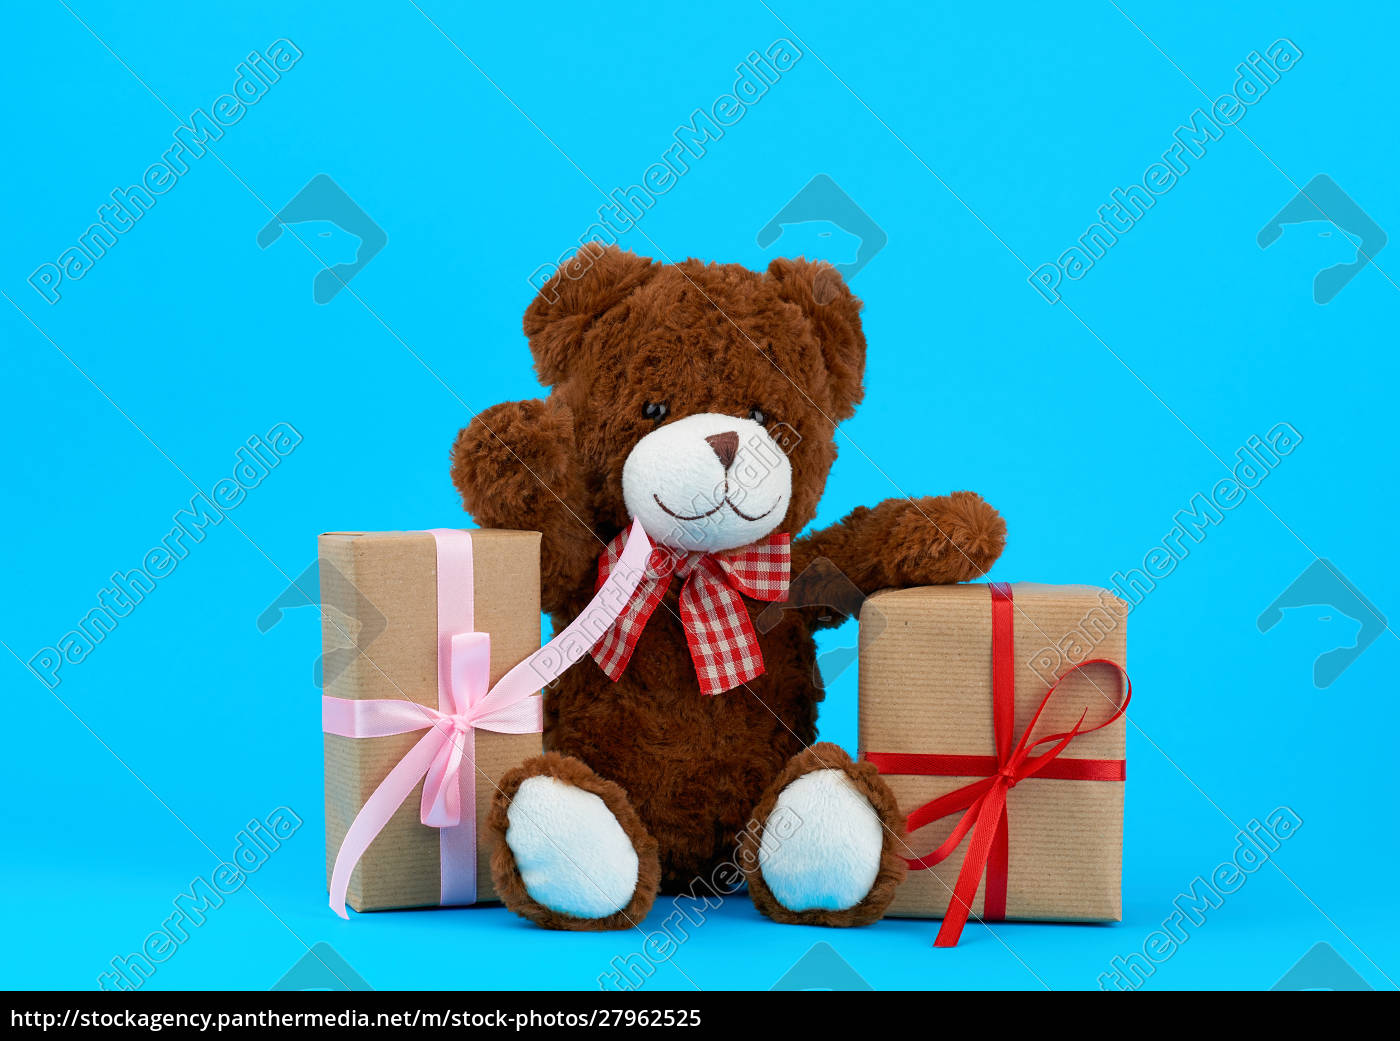 brown, cute, teddy, bear, and, gifts - 27962525